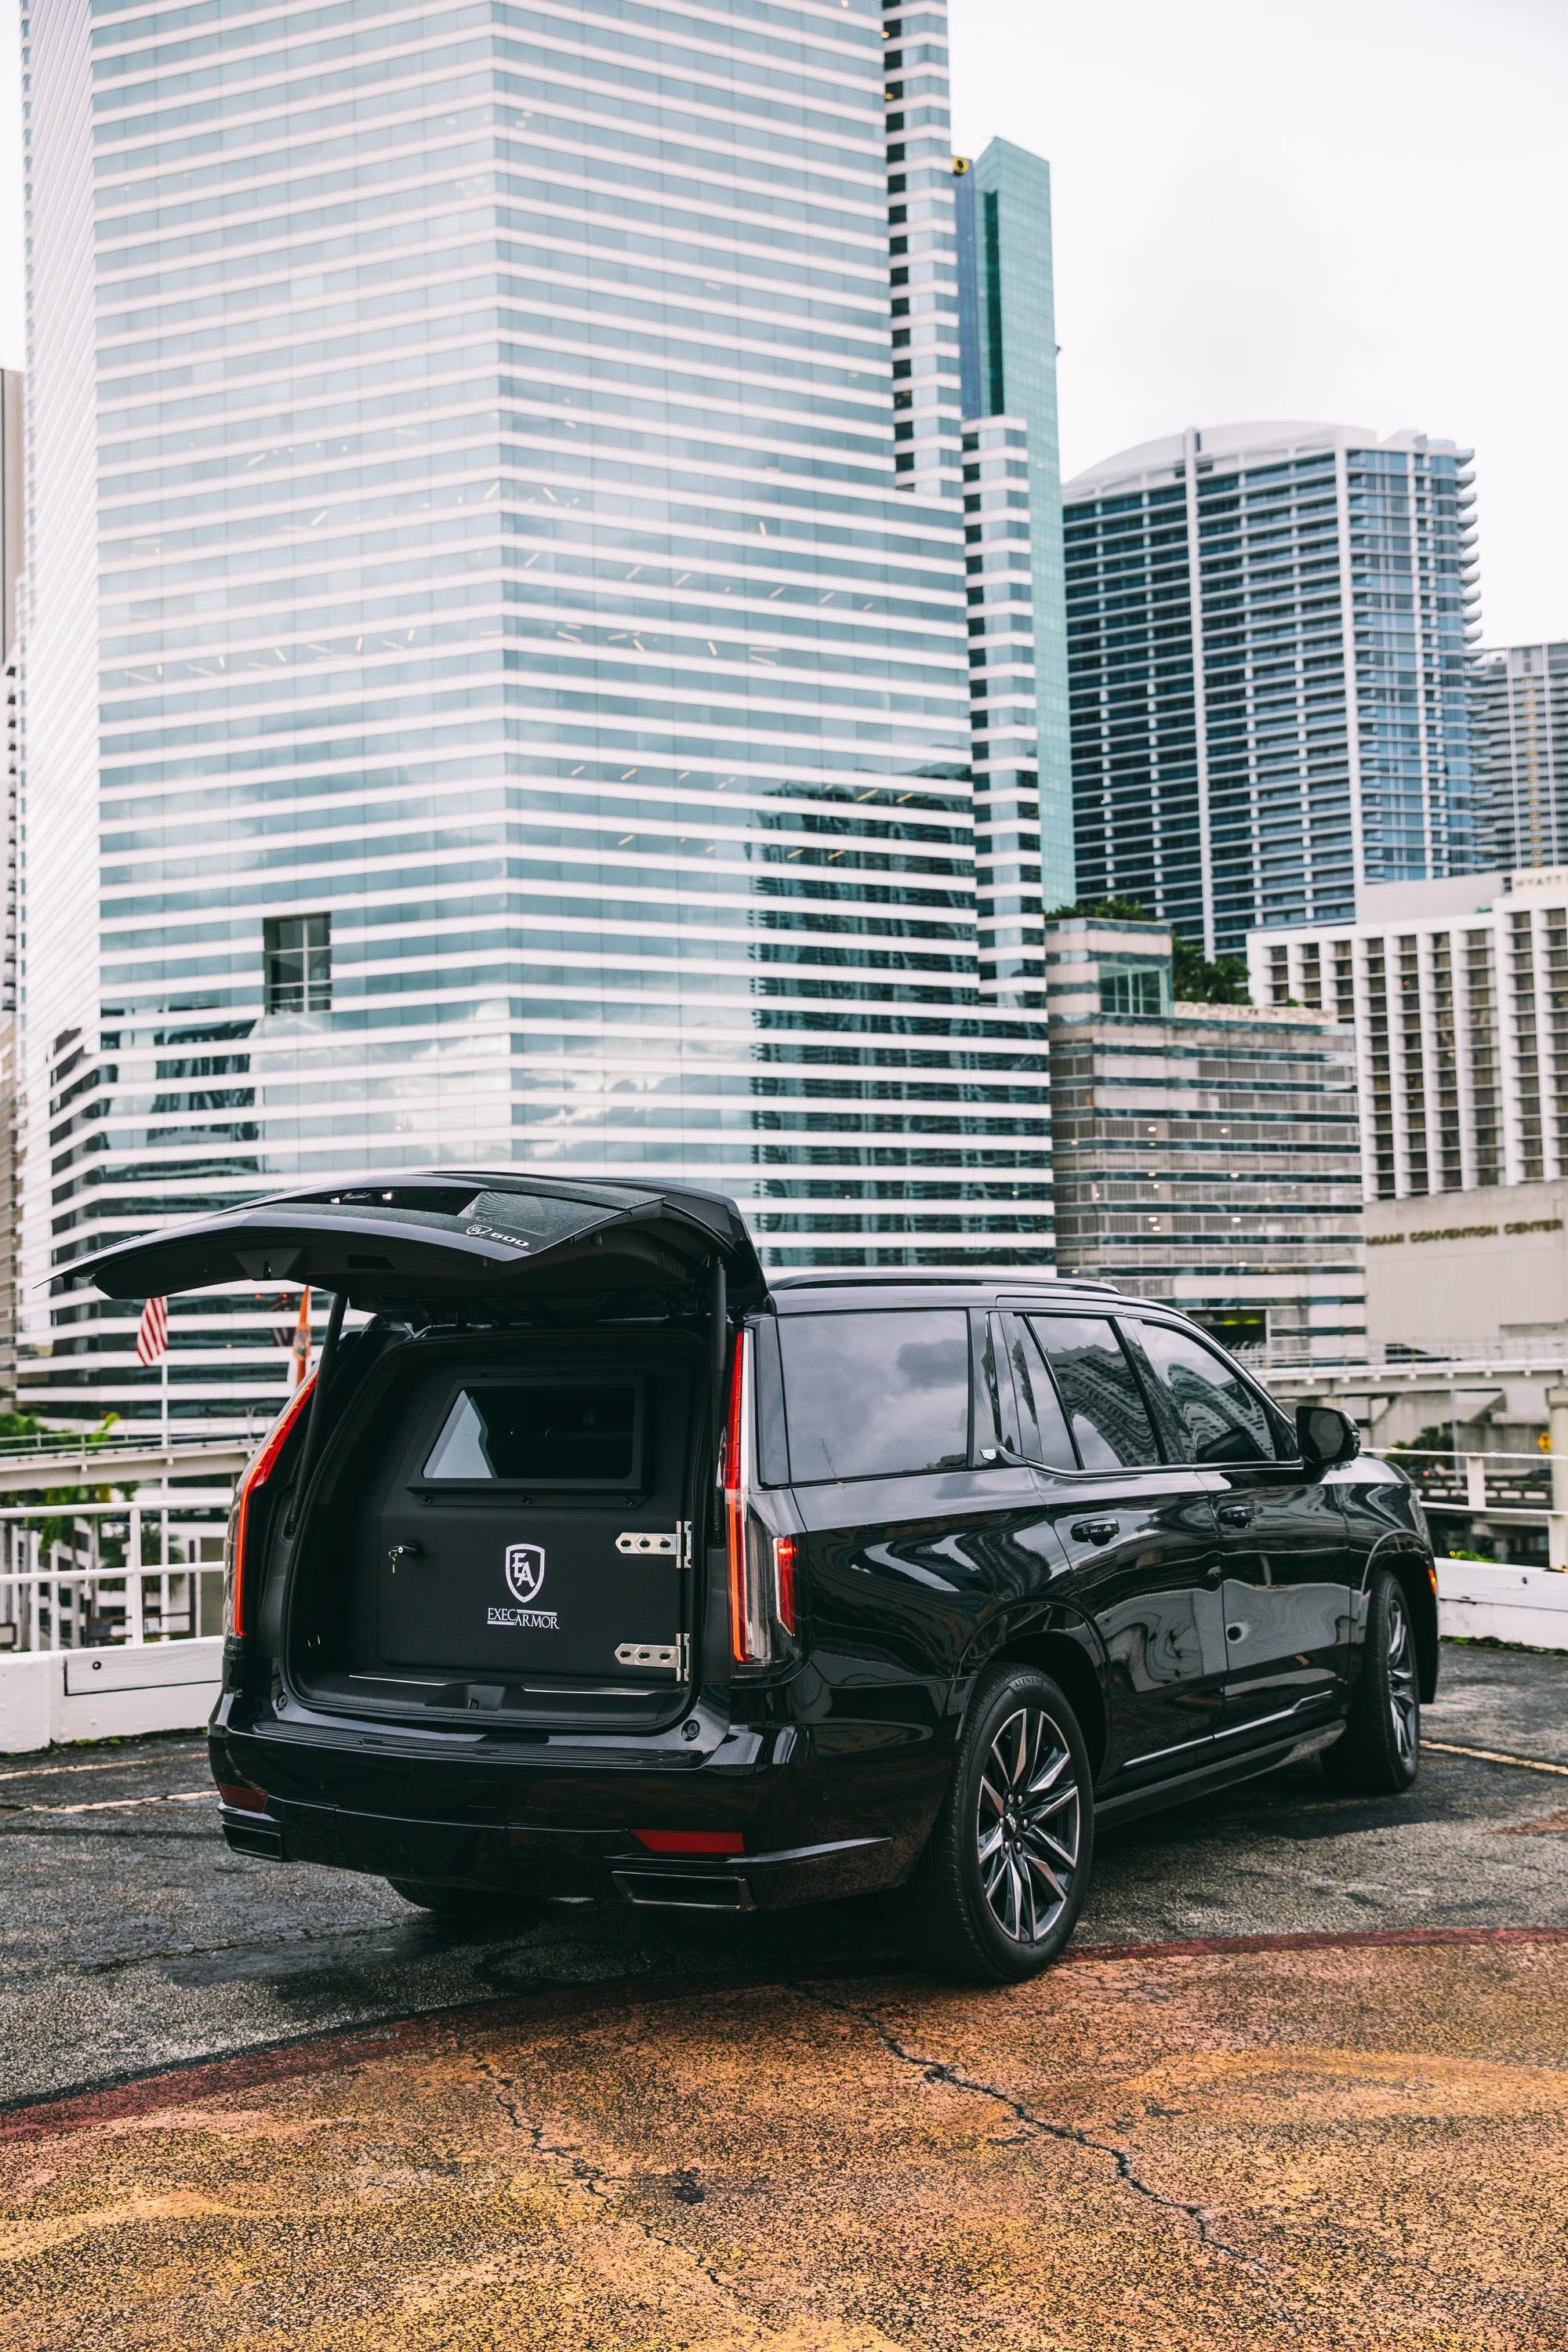 Image #6 of our  Armored Cadillac Escalade    In Miami Fort Lauderdale Palm Beach South Florida